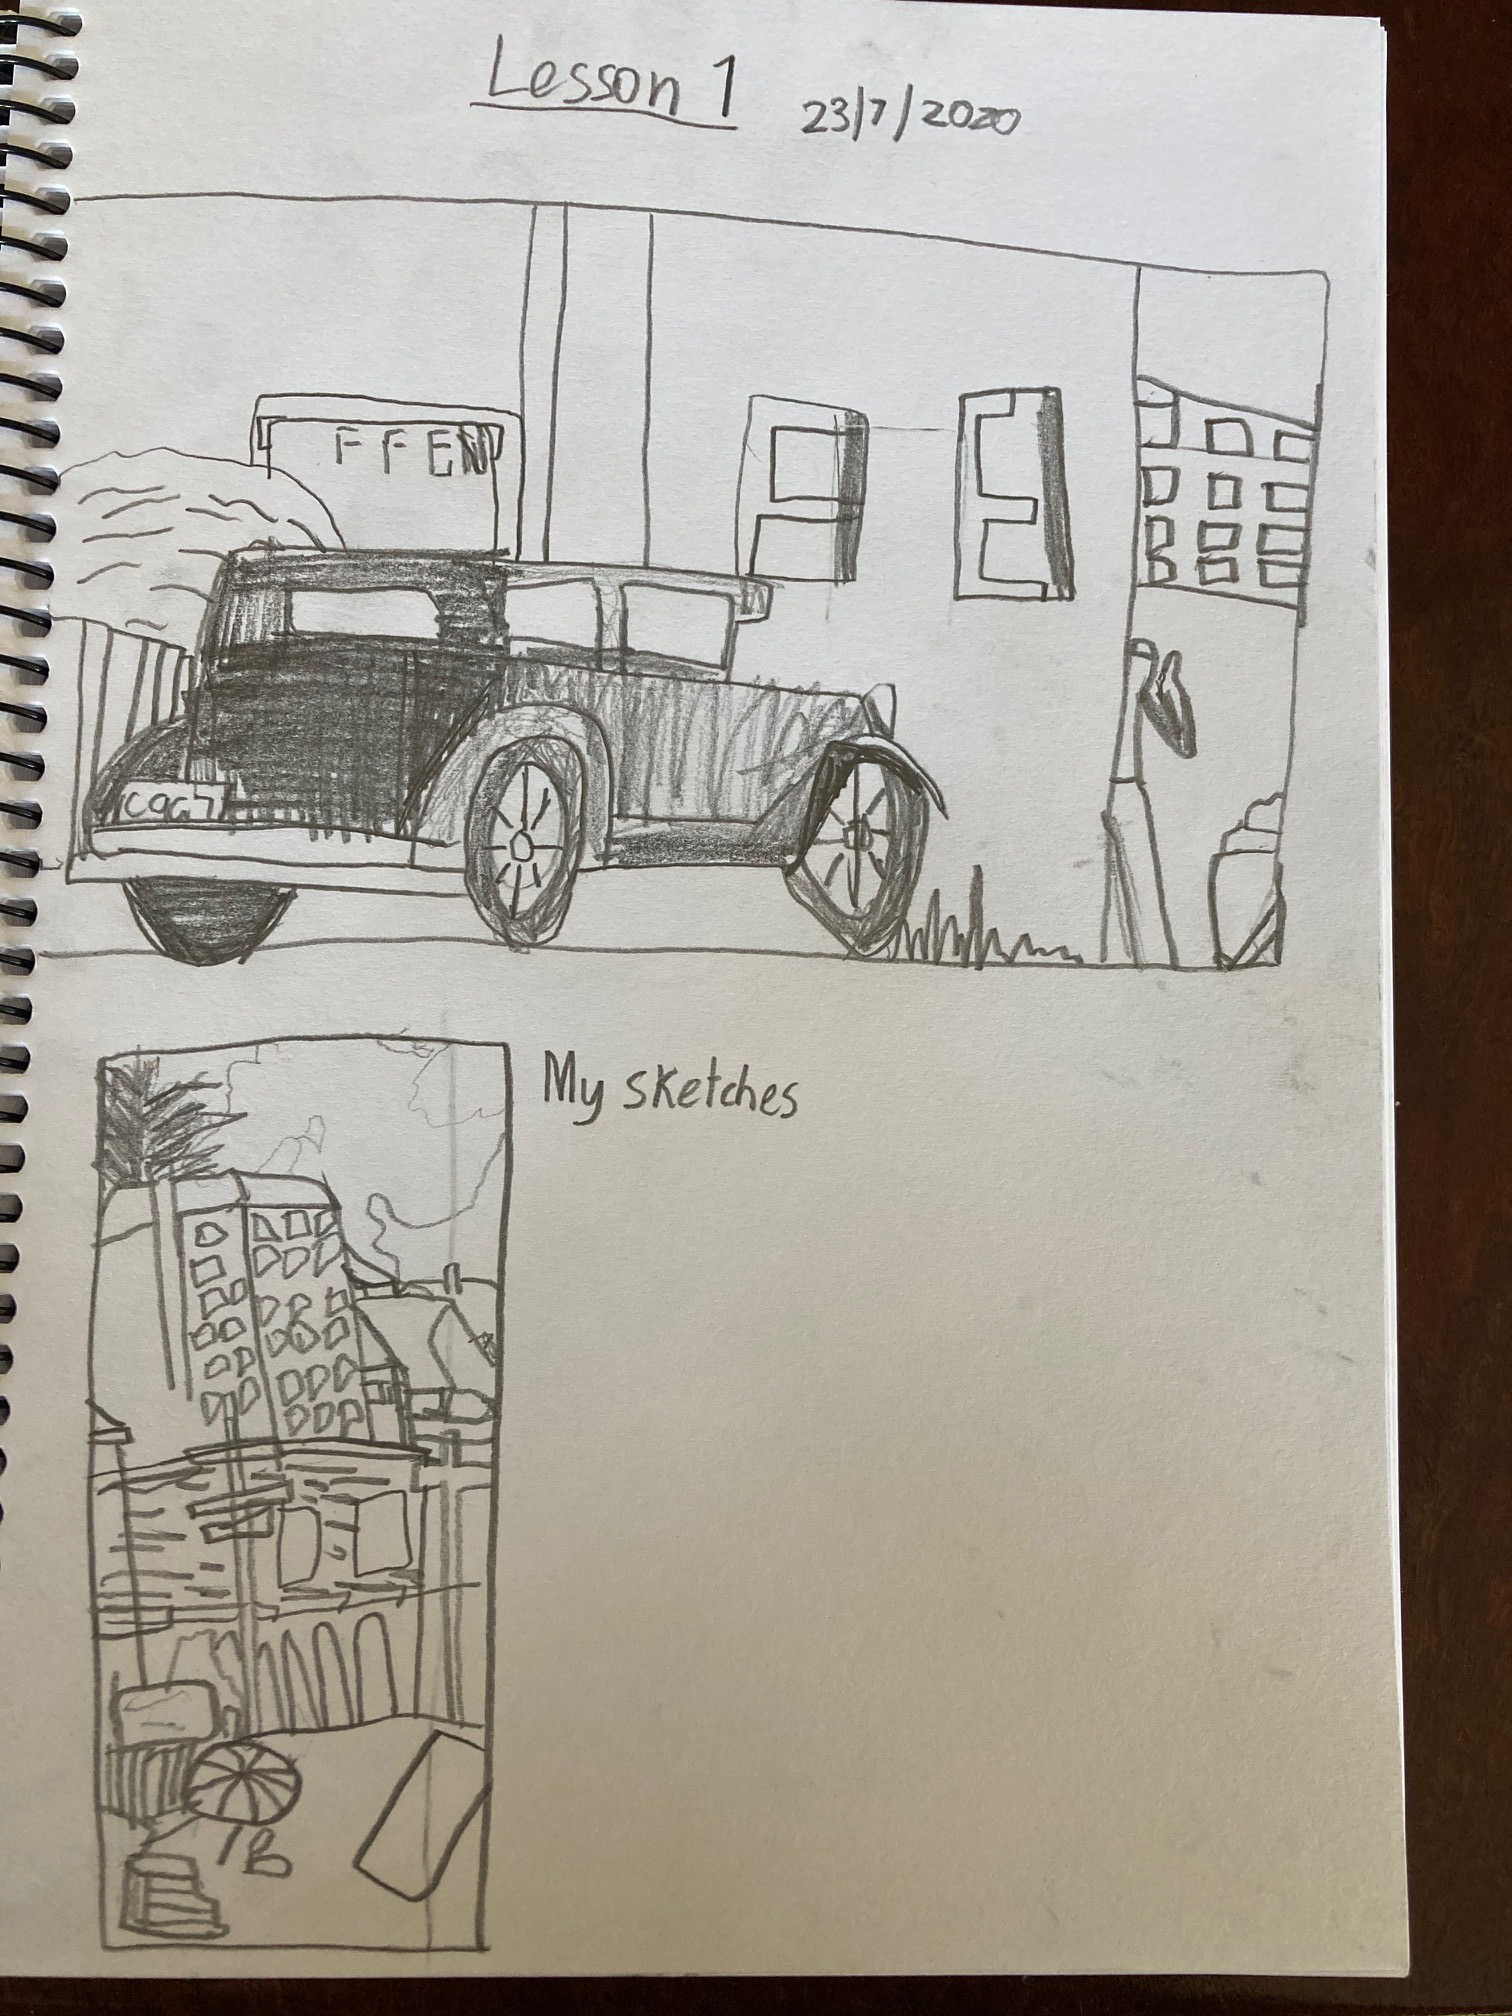 A drawing created by an Art Club member of a car and some buildings.